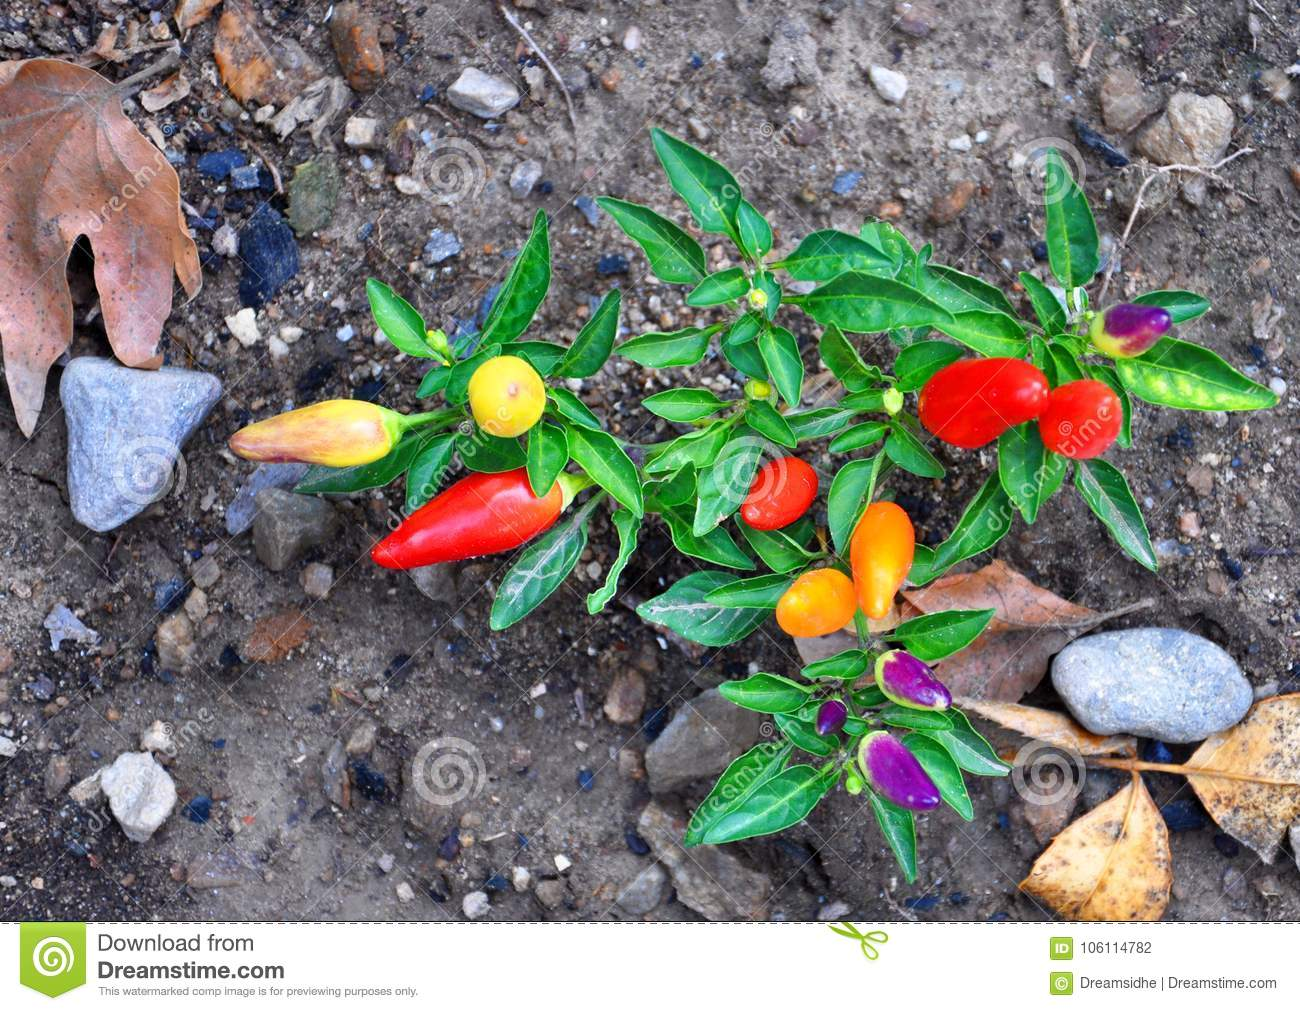 Hot peppers of different varieties of maturity